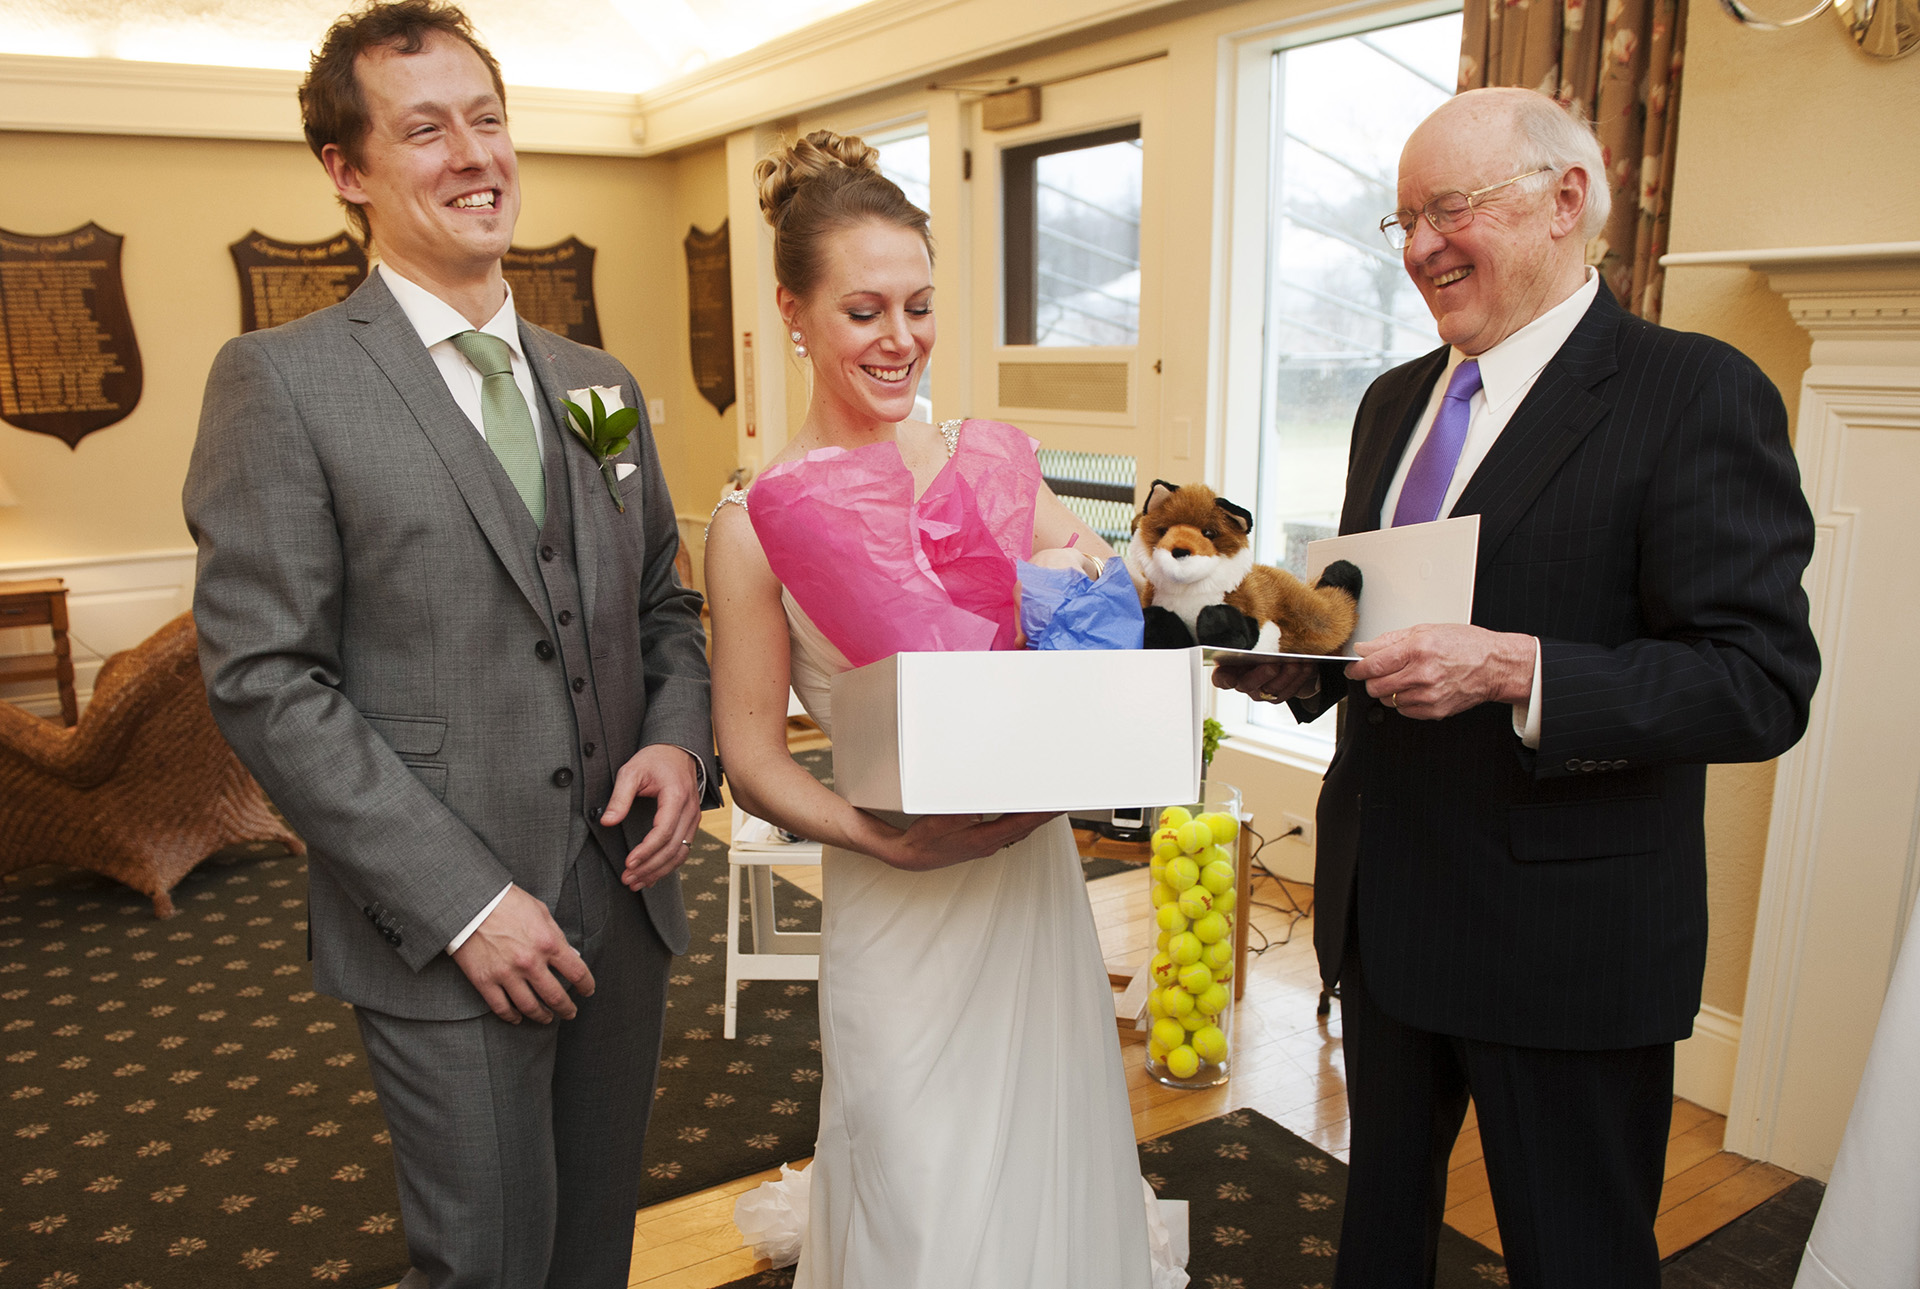 MA Elopement Photographer | The newlyweds laugh as they open their officiant's gift to them